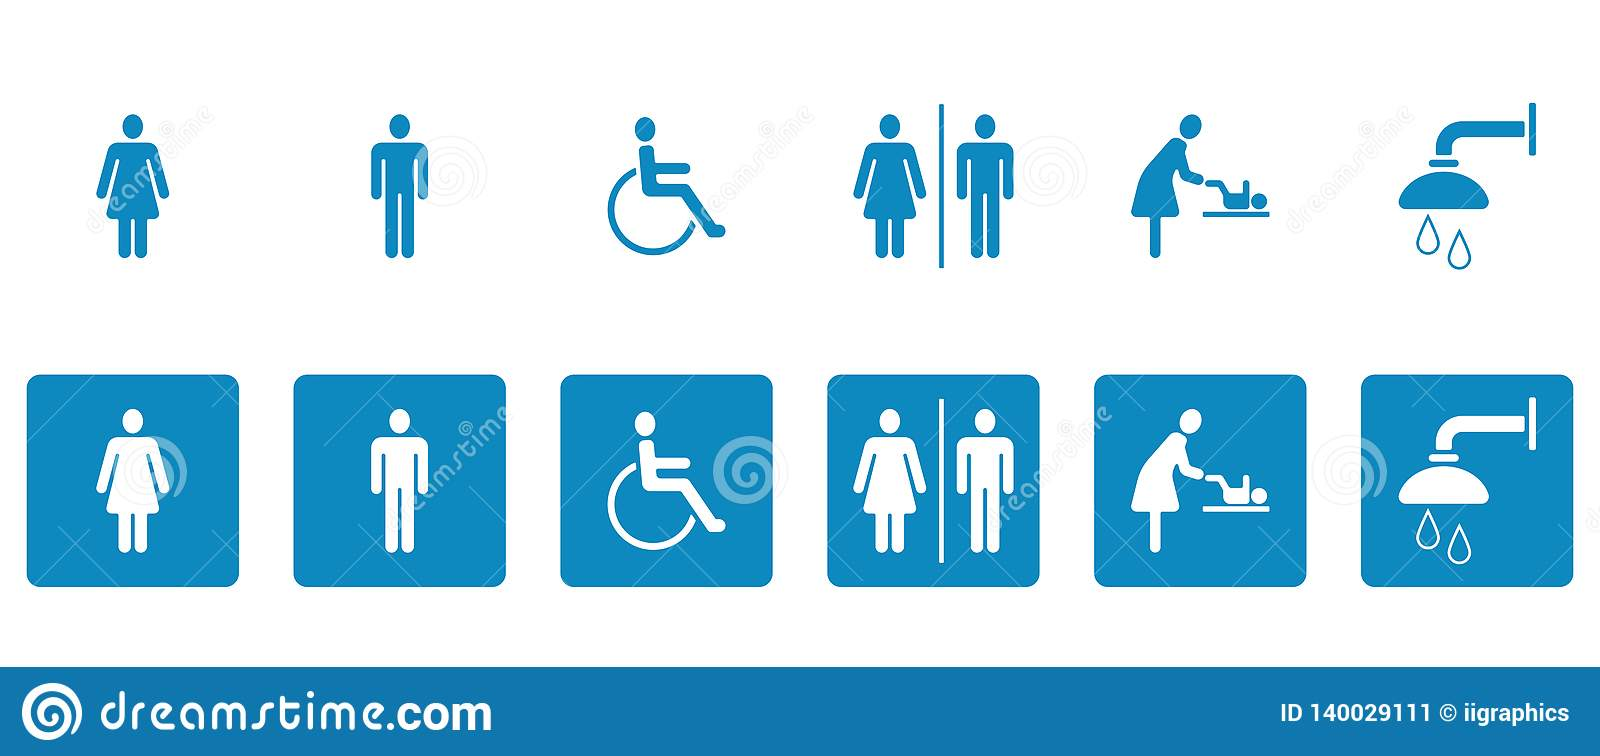 Wc- & toalettPictograms - Iconset